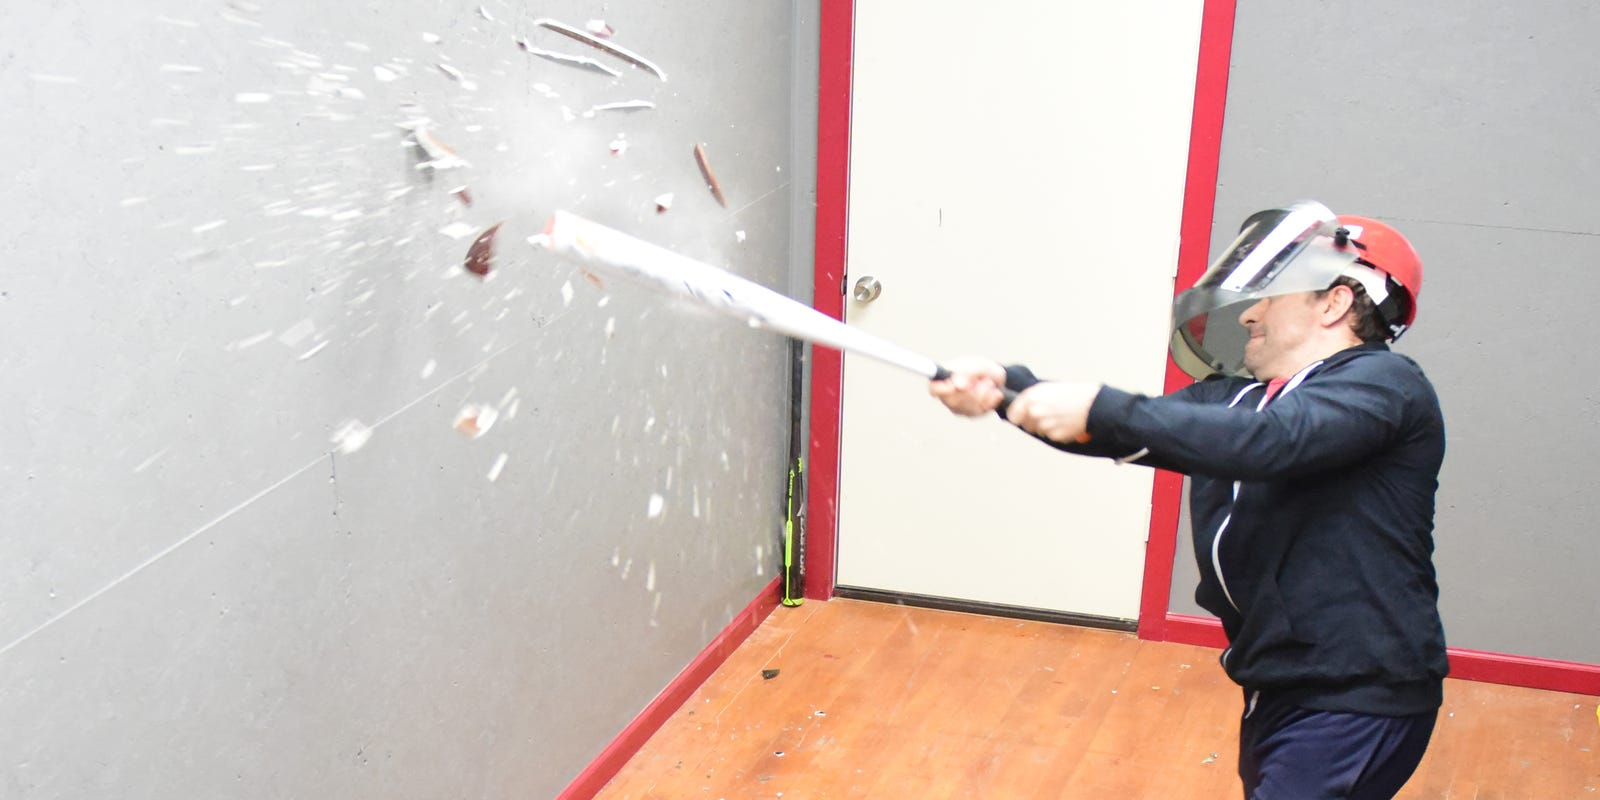 At the Rage Room, let your anger out